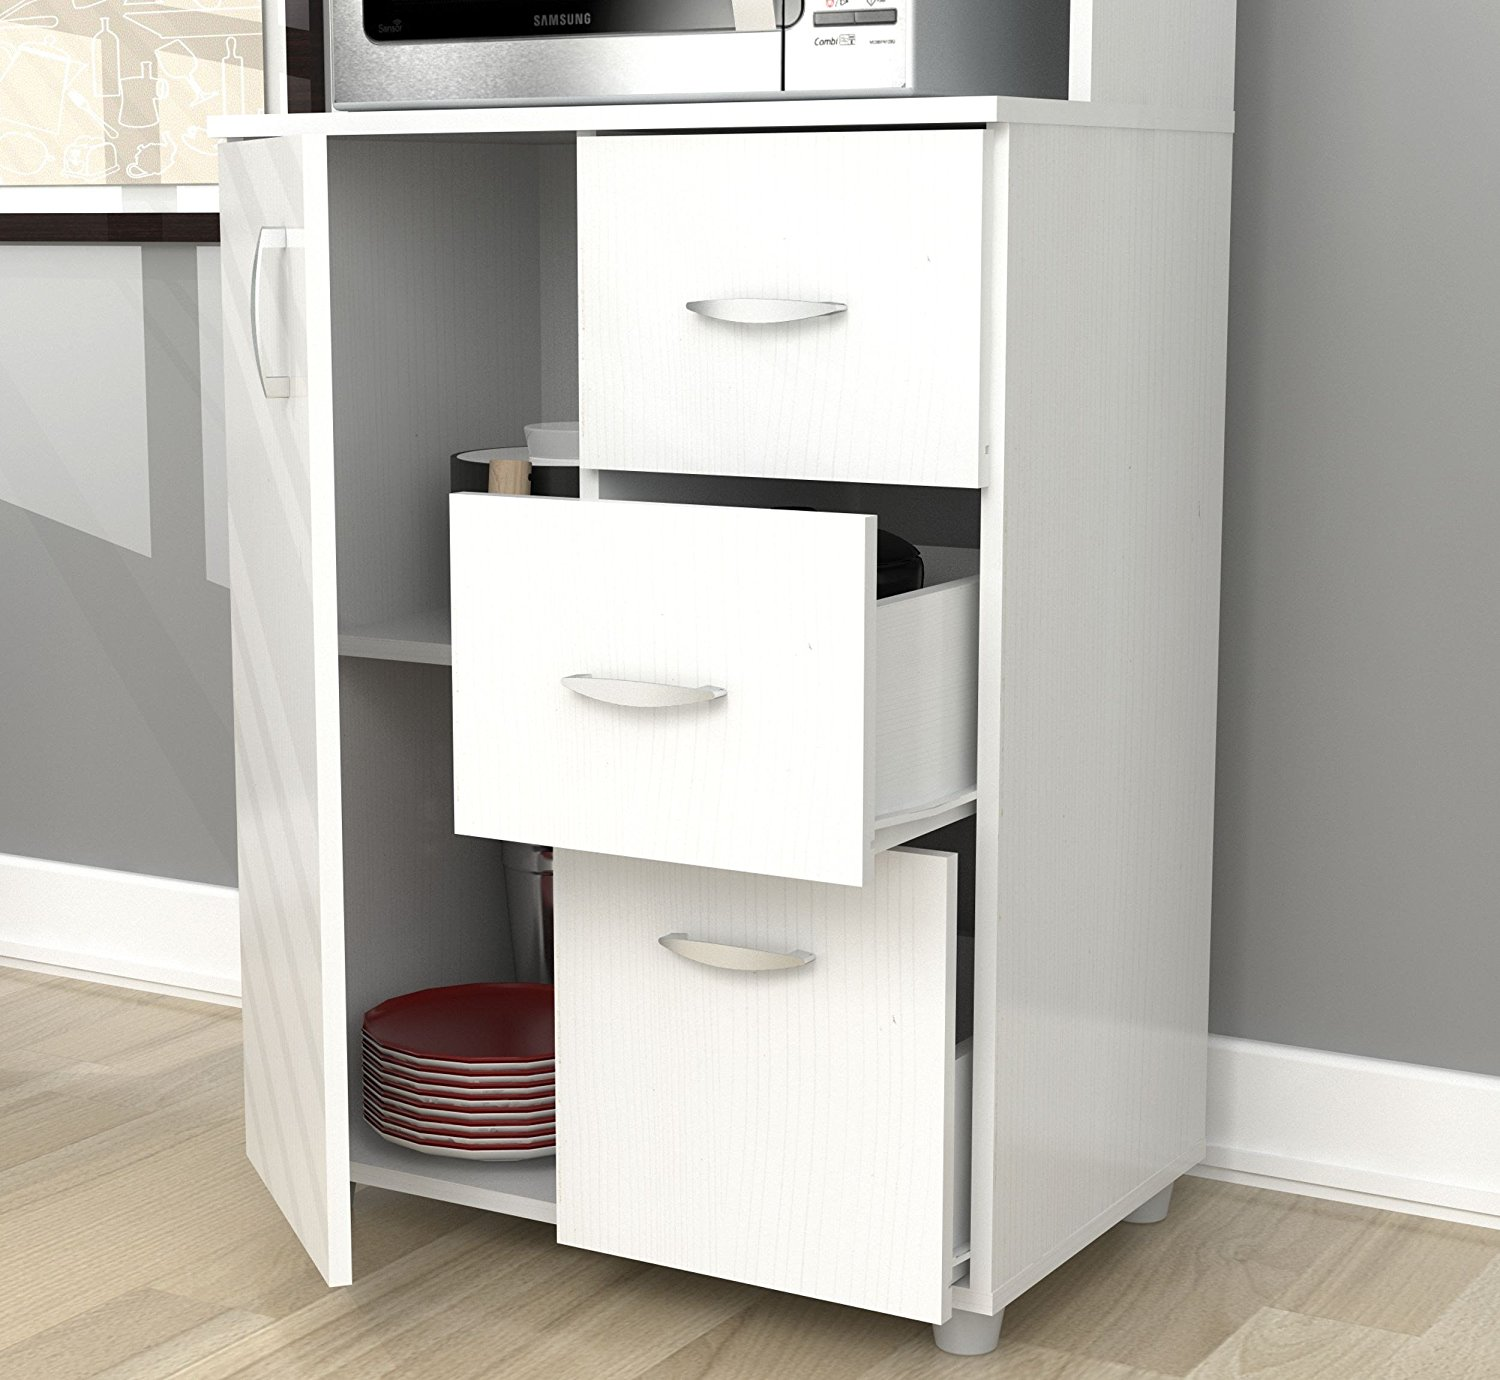 Inval America Larcinia-White Kitchen Cabinet